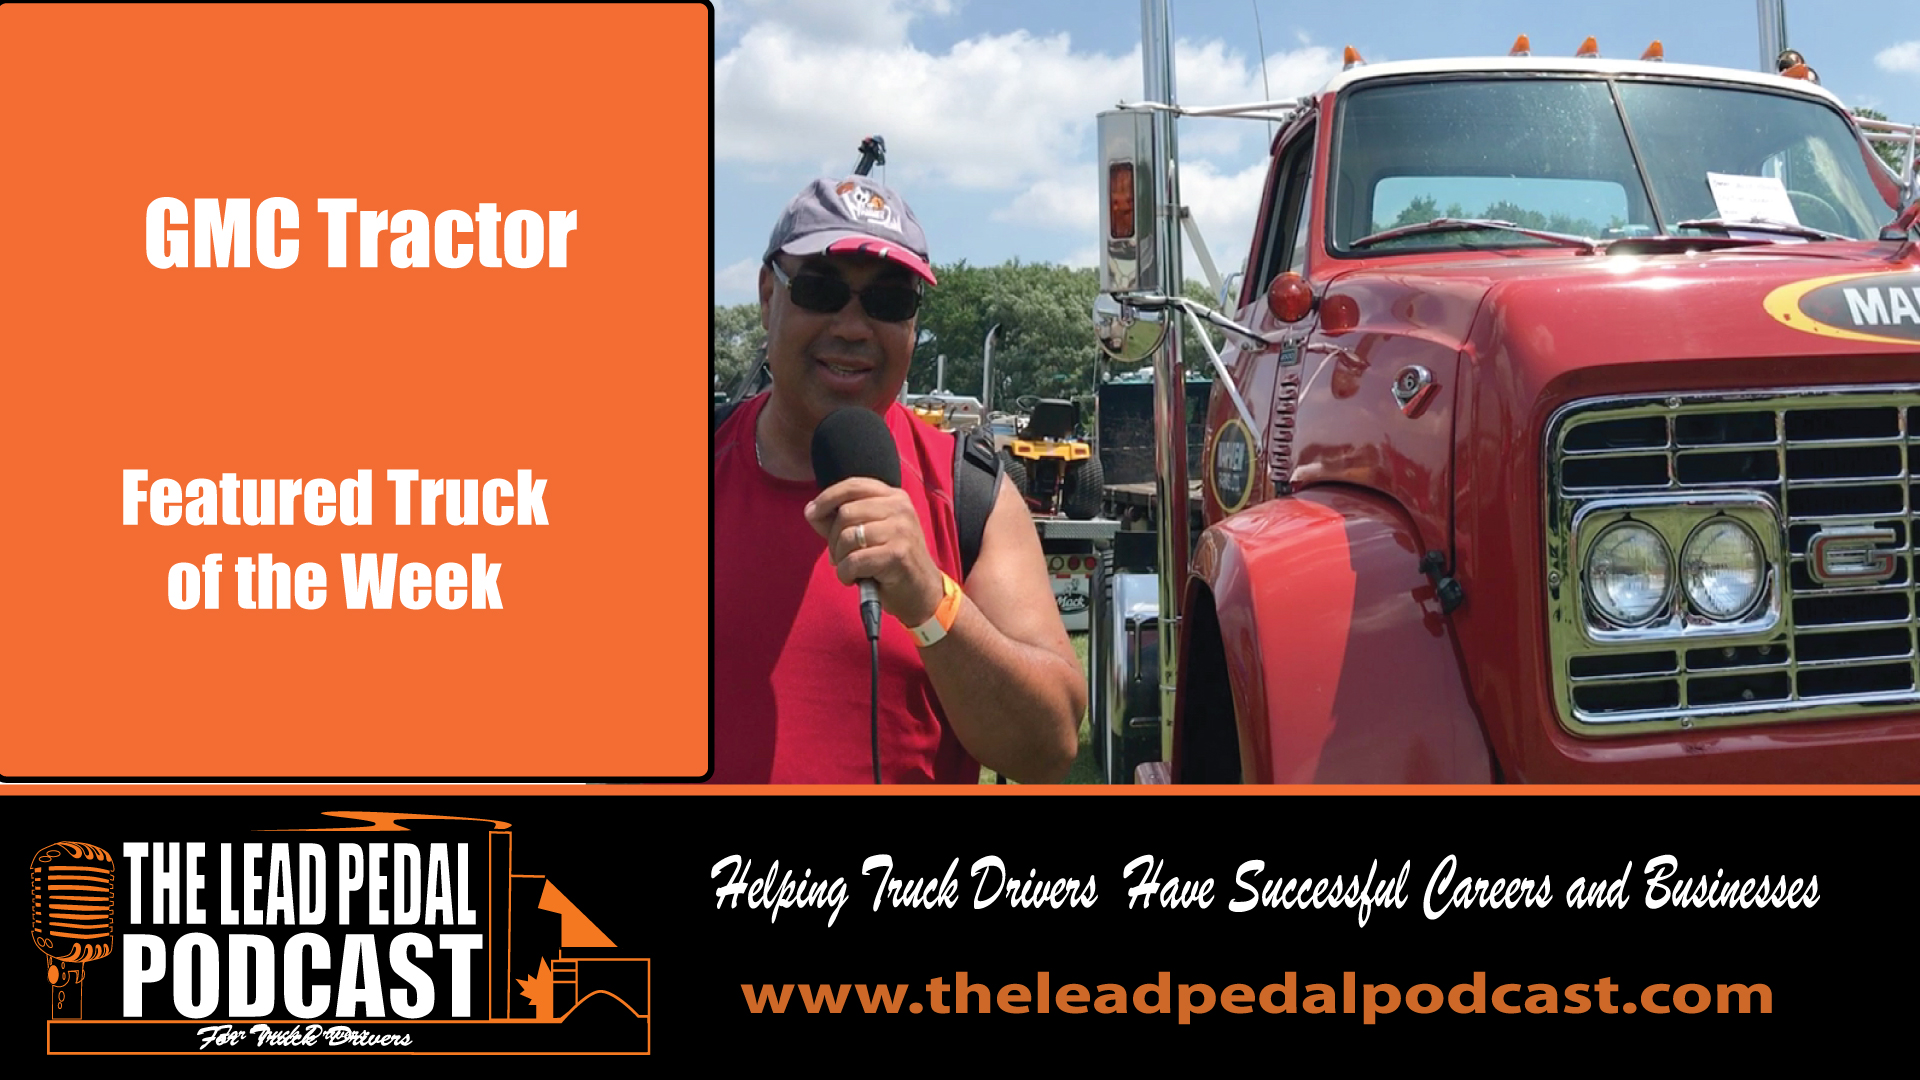 Featured truck -GMC Tractor